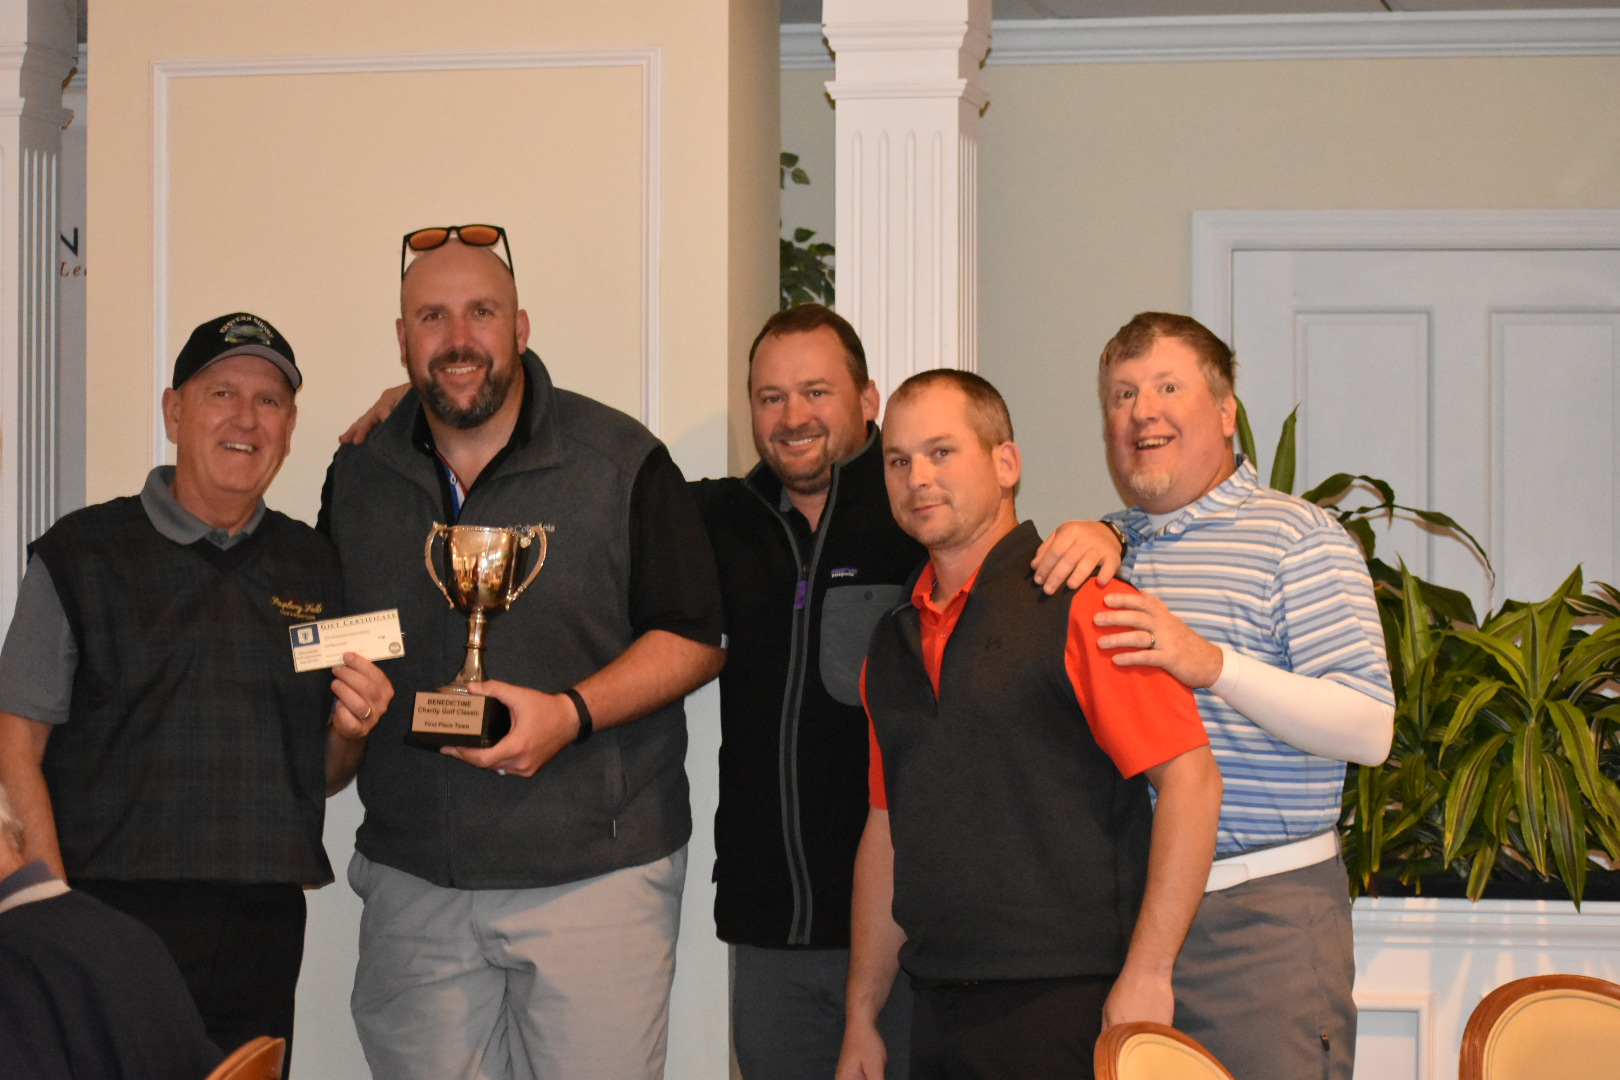 Golfers raise $45,010 at Birdies for Benedictine Charity Golf Tournament